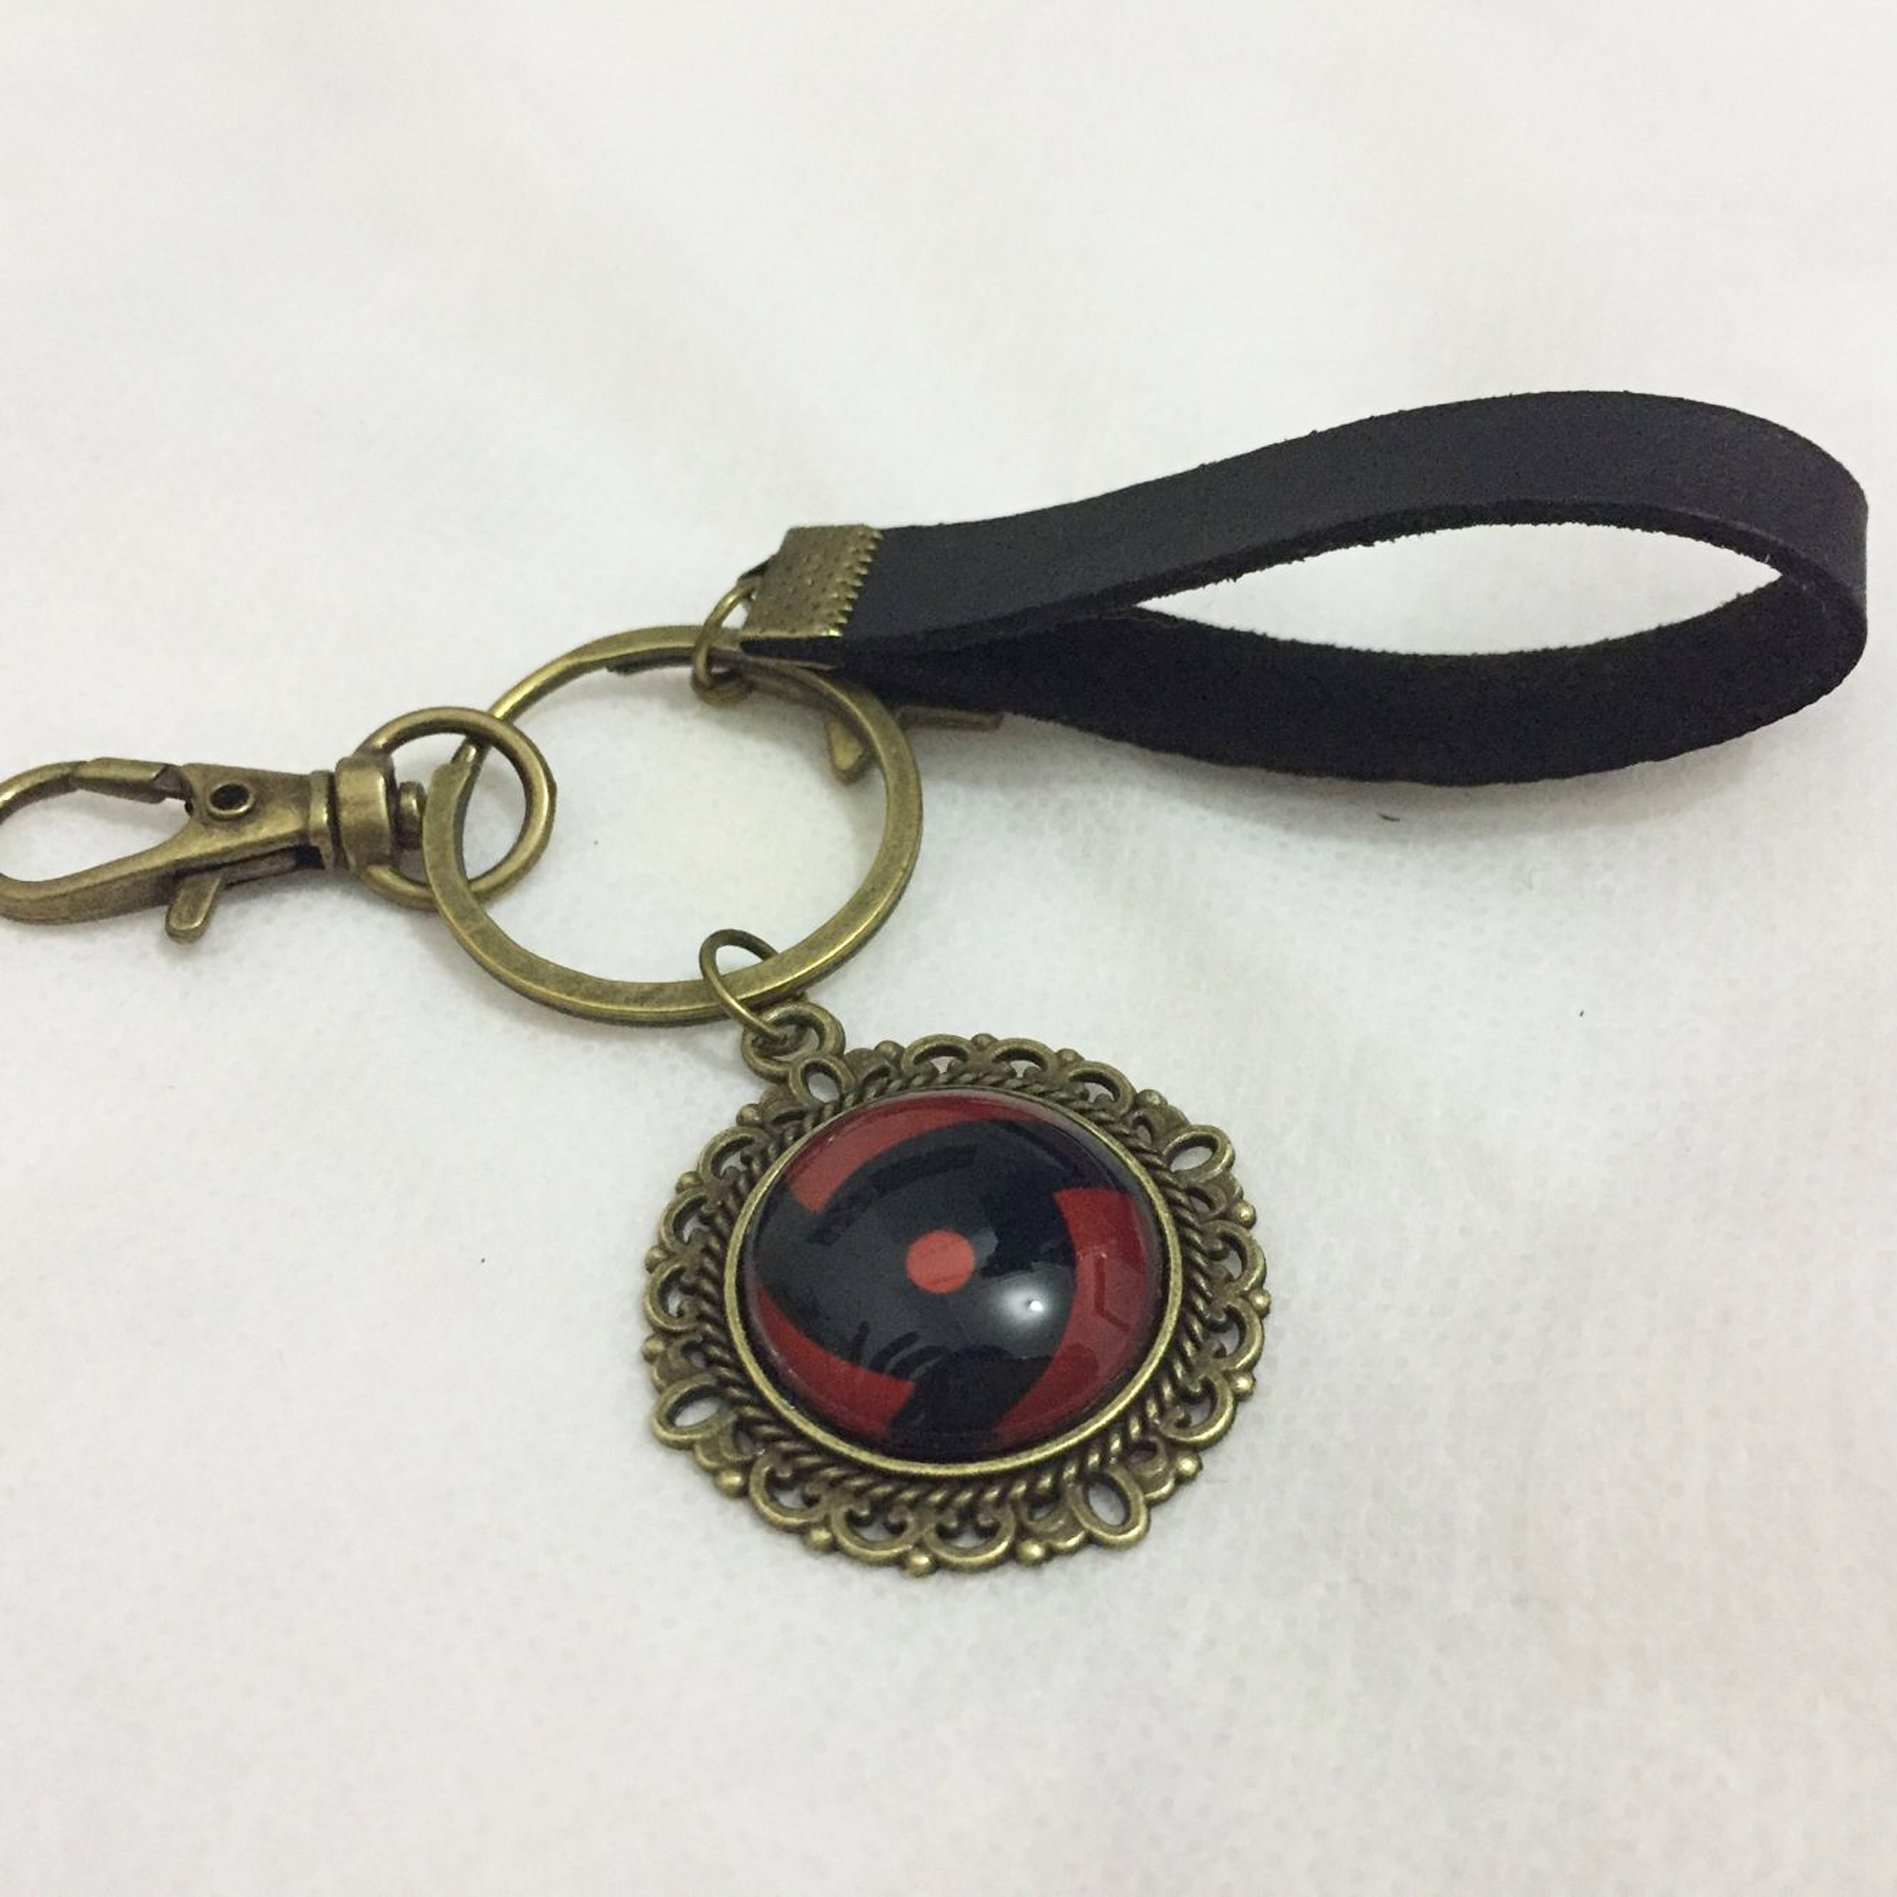 Dreamcosplay Anime Naruto Itachi Sharingan Logo Key chain Pendant